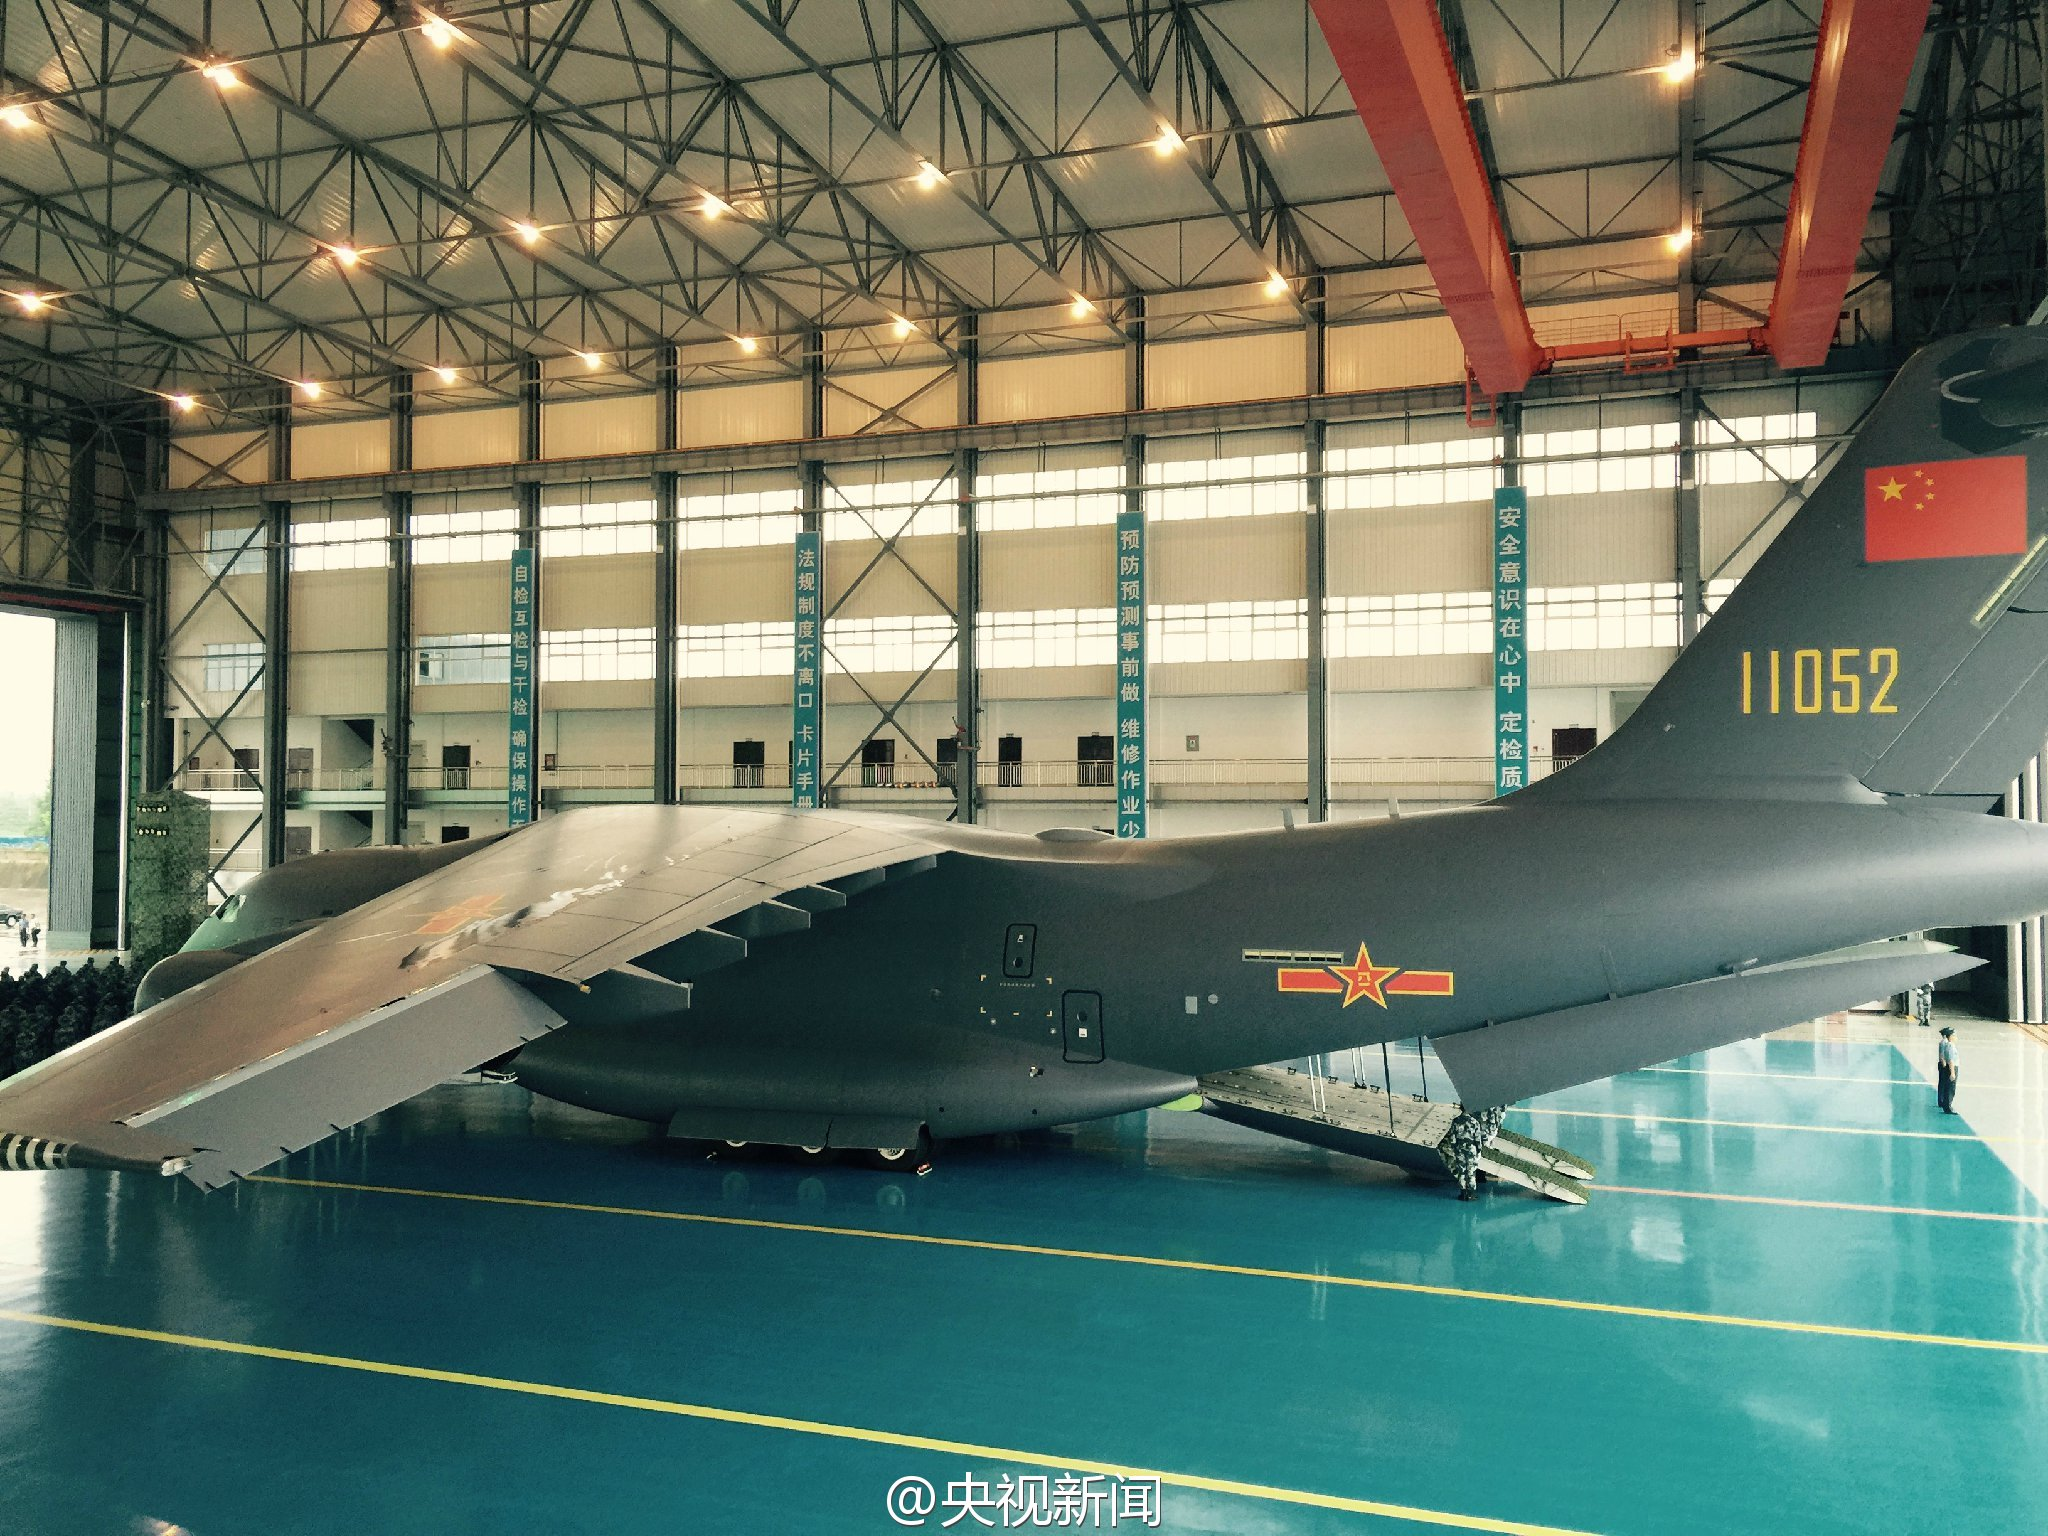 Y20 Chinese Transport Aircraft | Page 8 | Indian Defence Forum